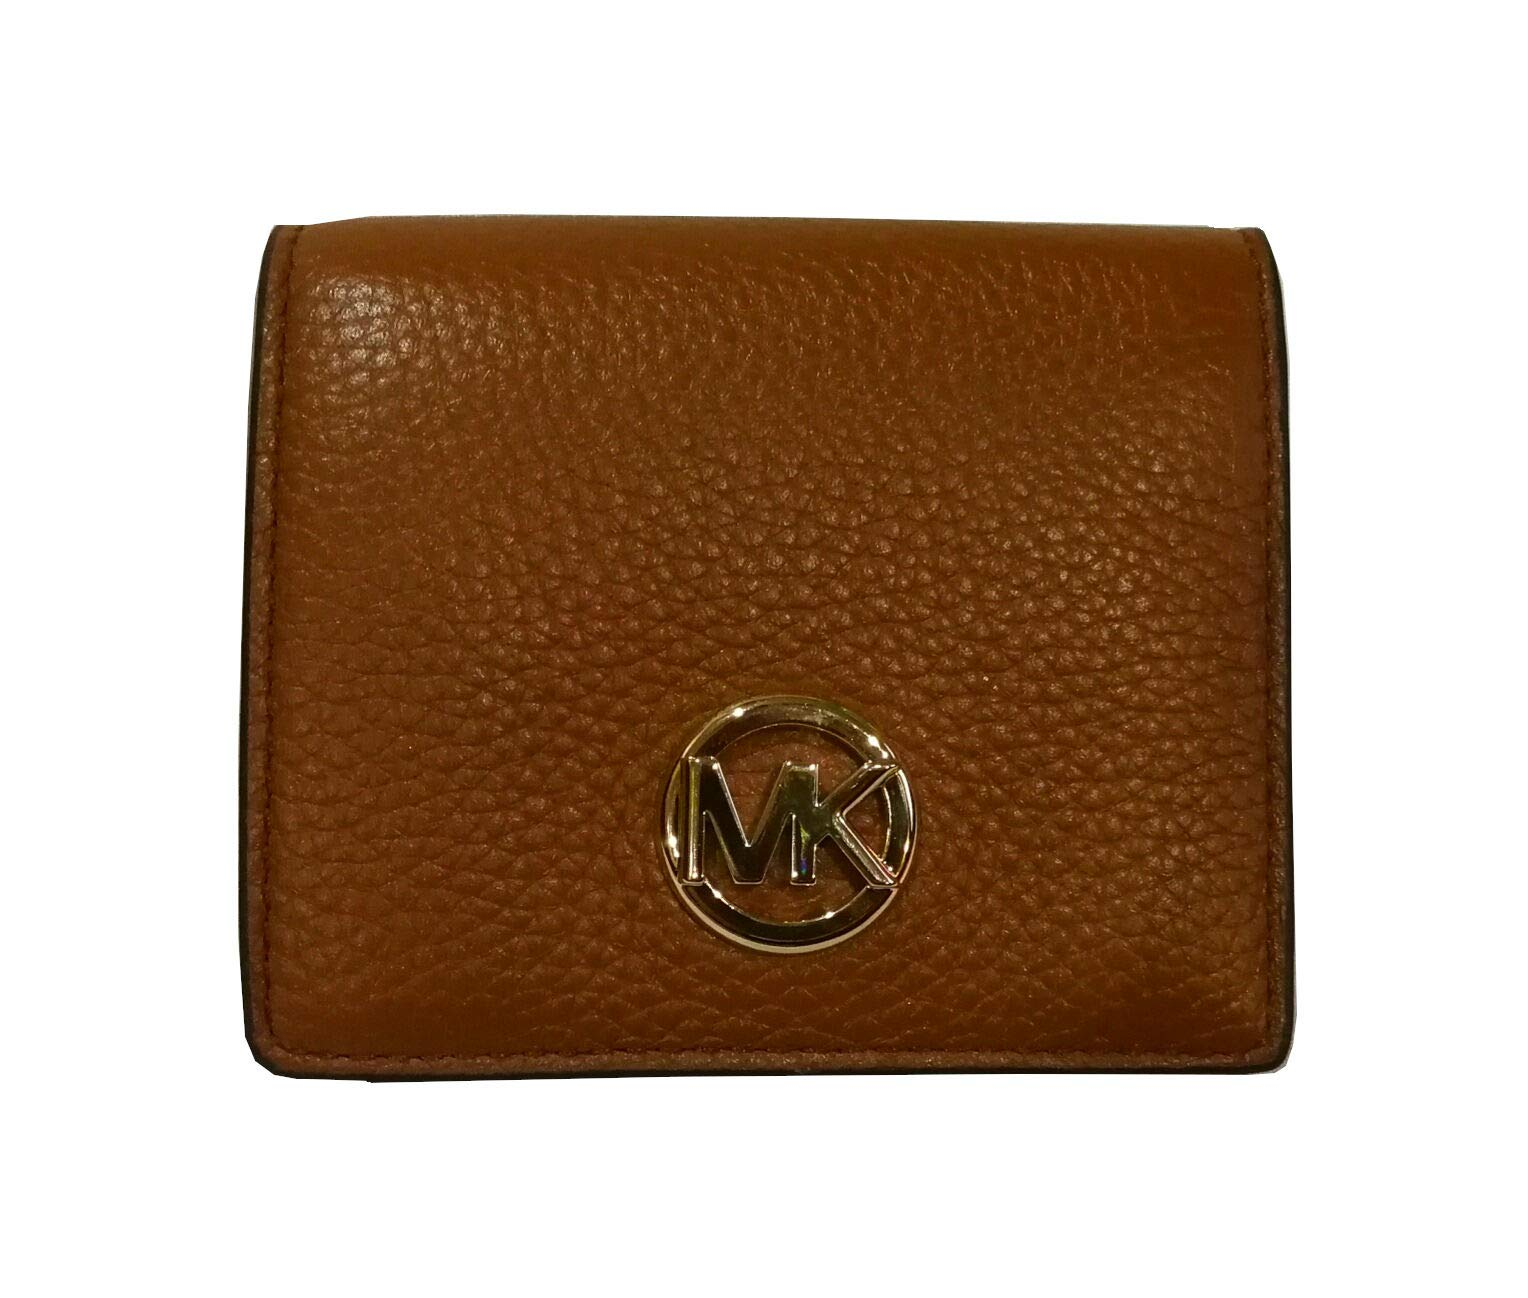 Michael Kors Fulton Leather Carryall Card Case Wallet (Luggage) by Michael Kors